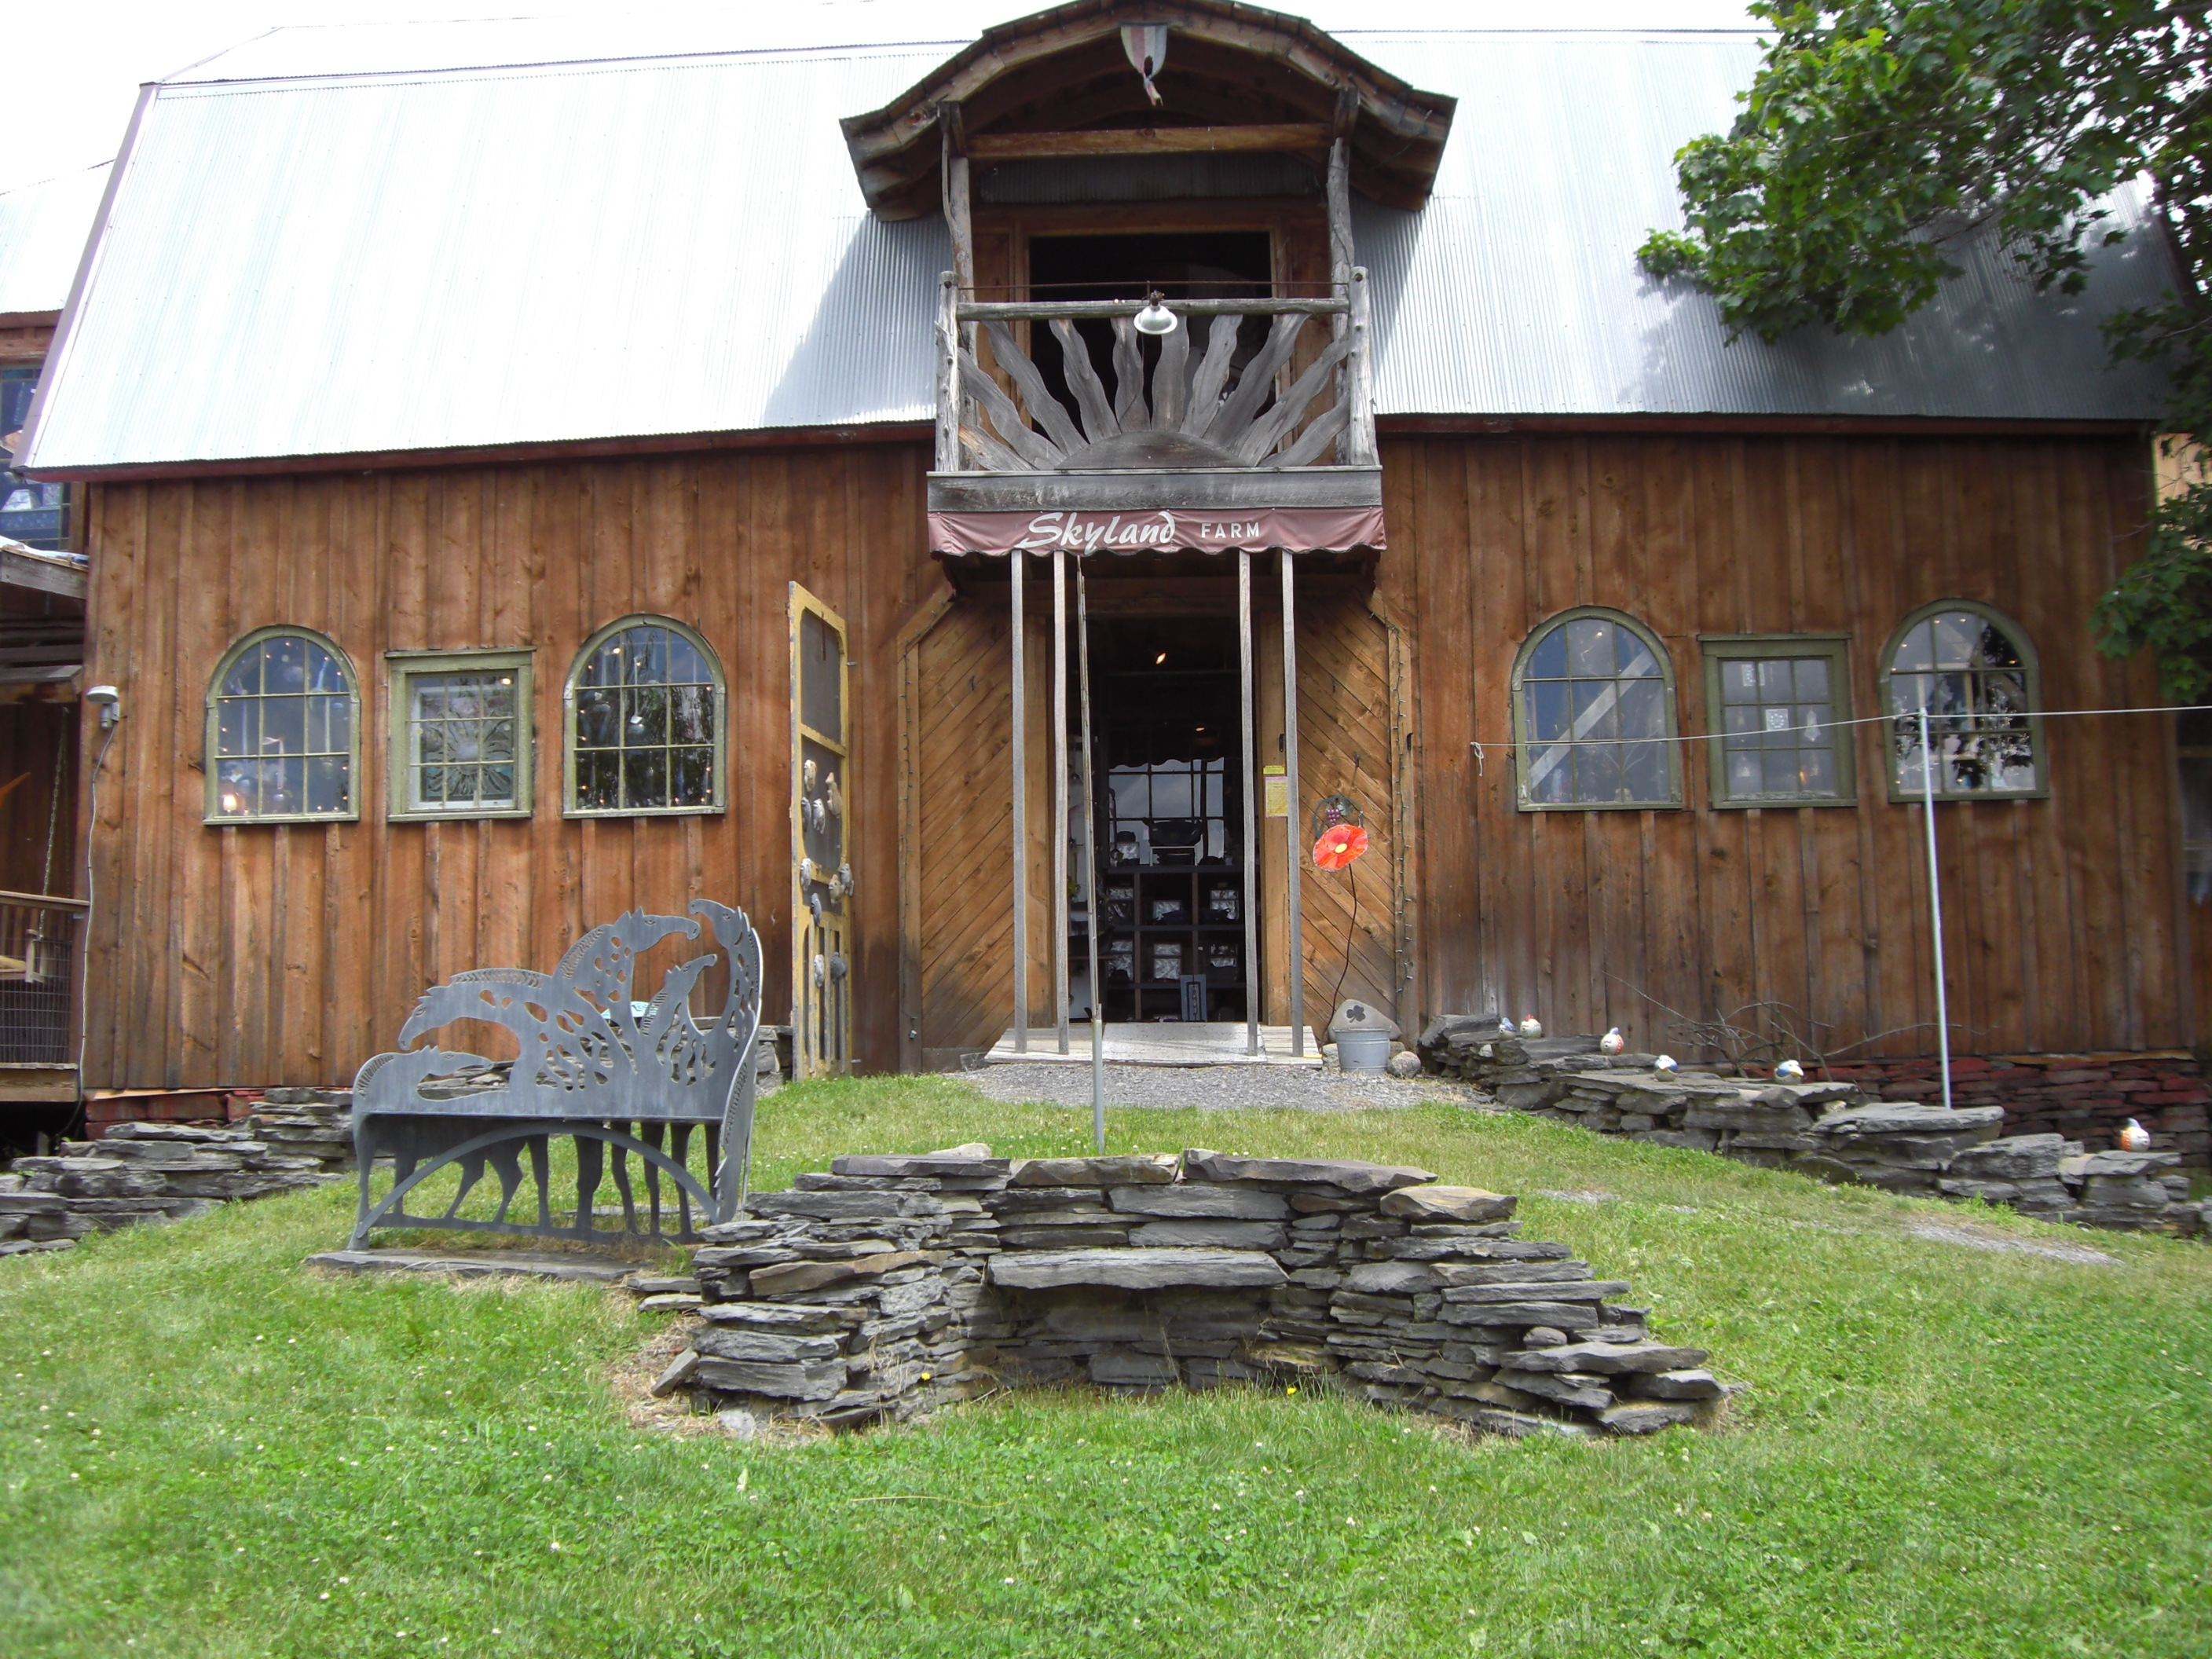 Skyland Farm and Gallery